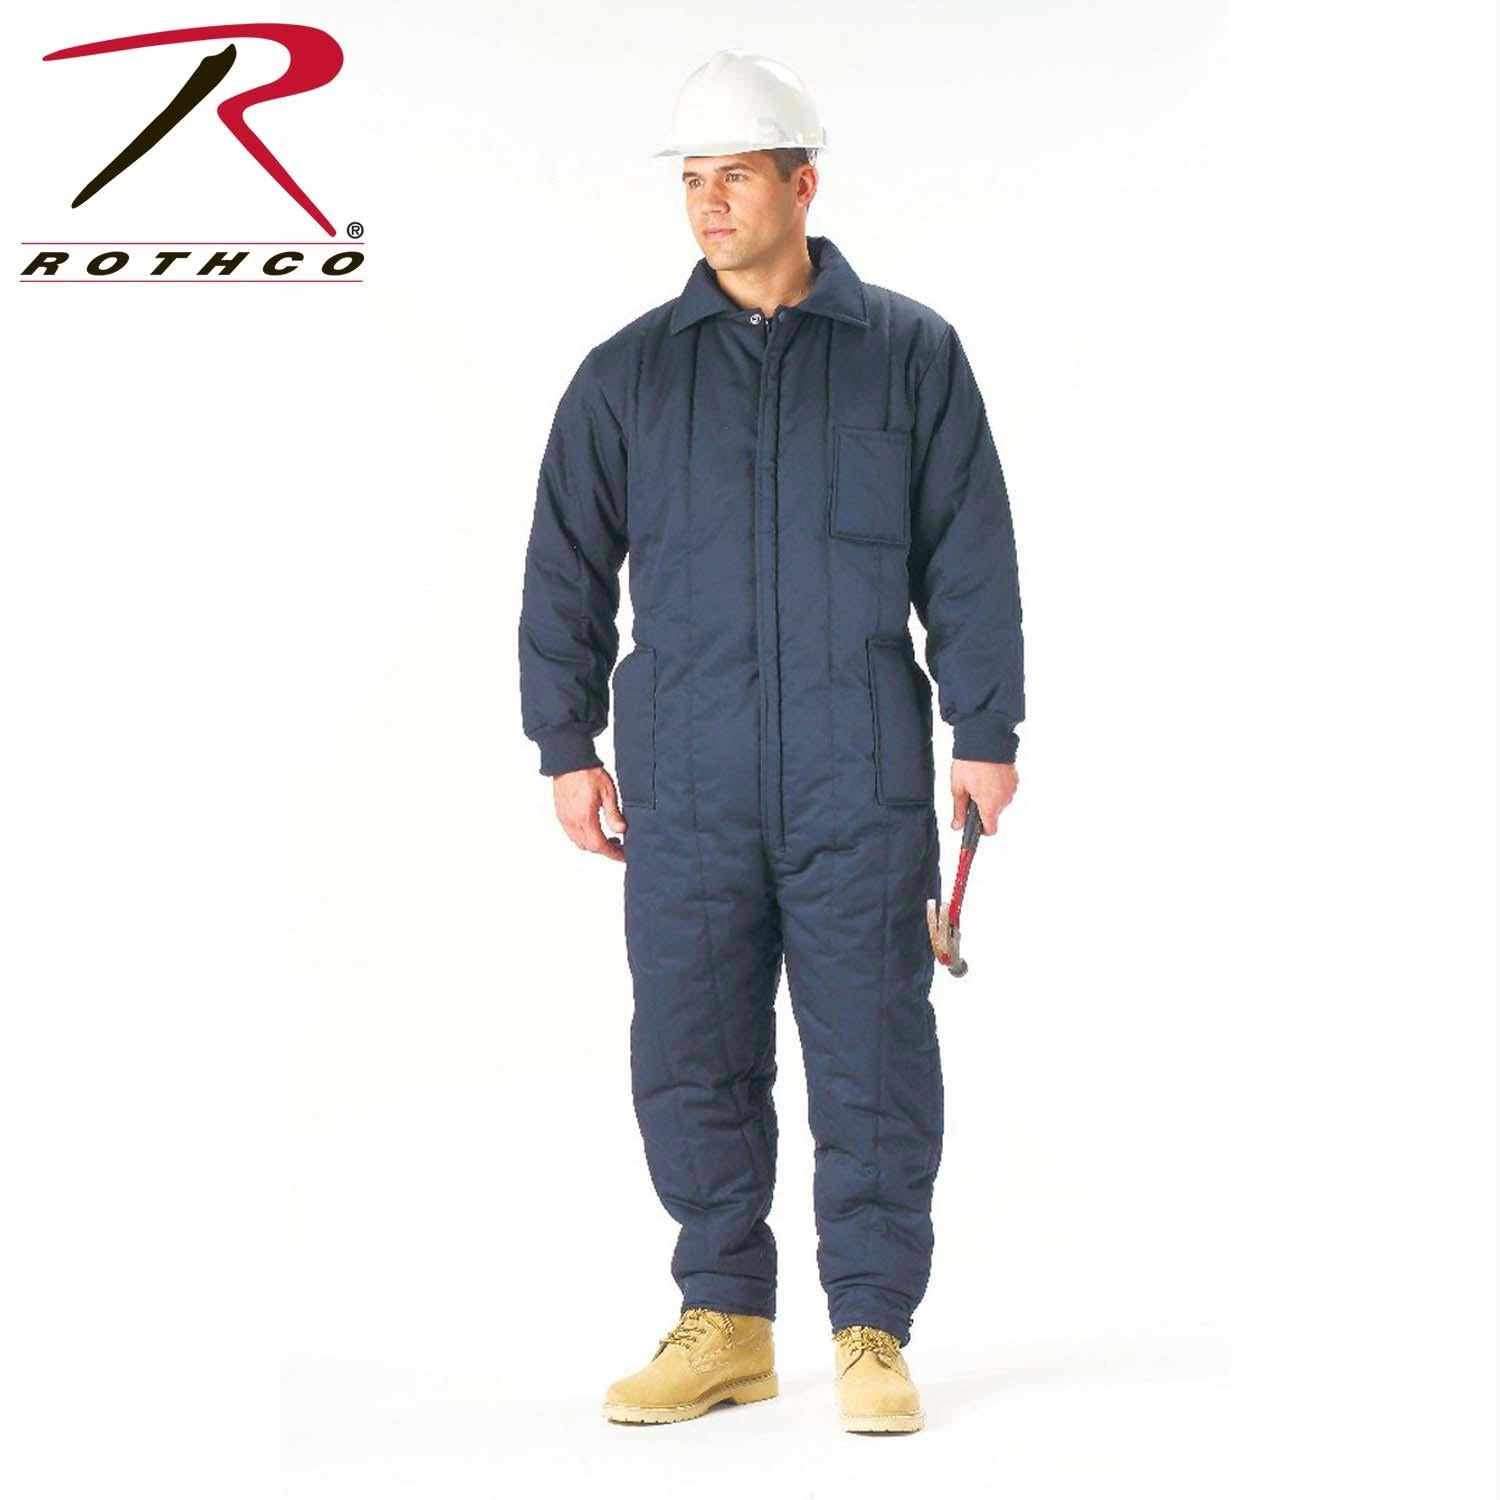 Rothco Insulated Coveralls - Navy Blue / XL